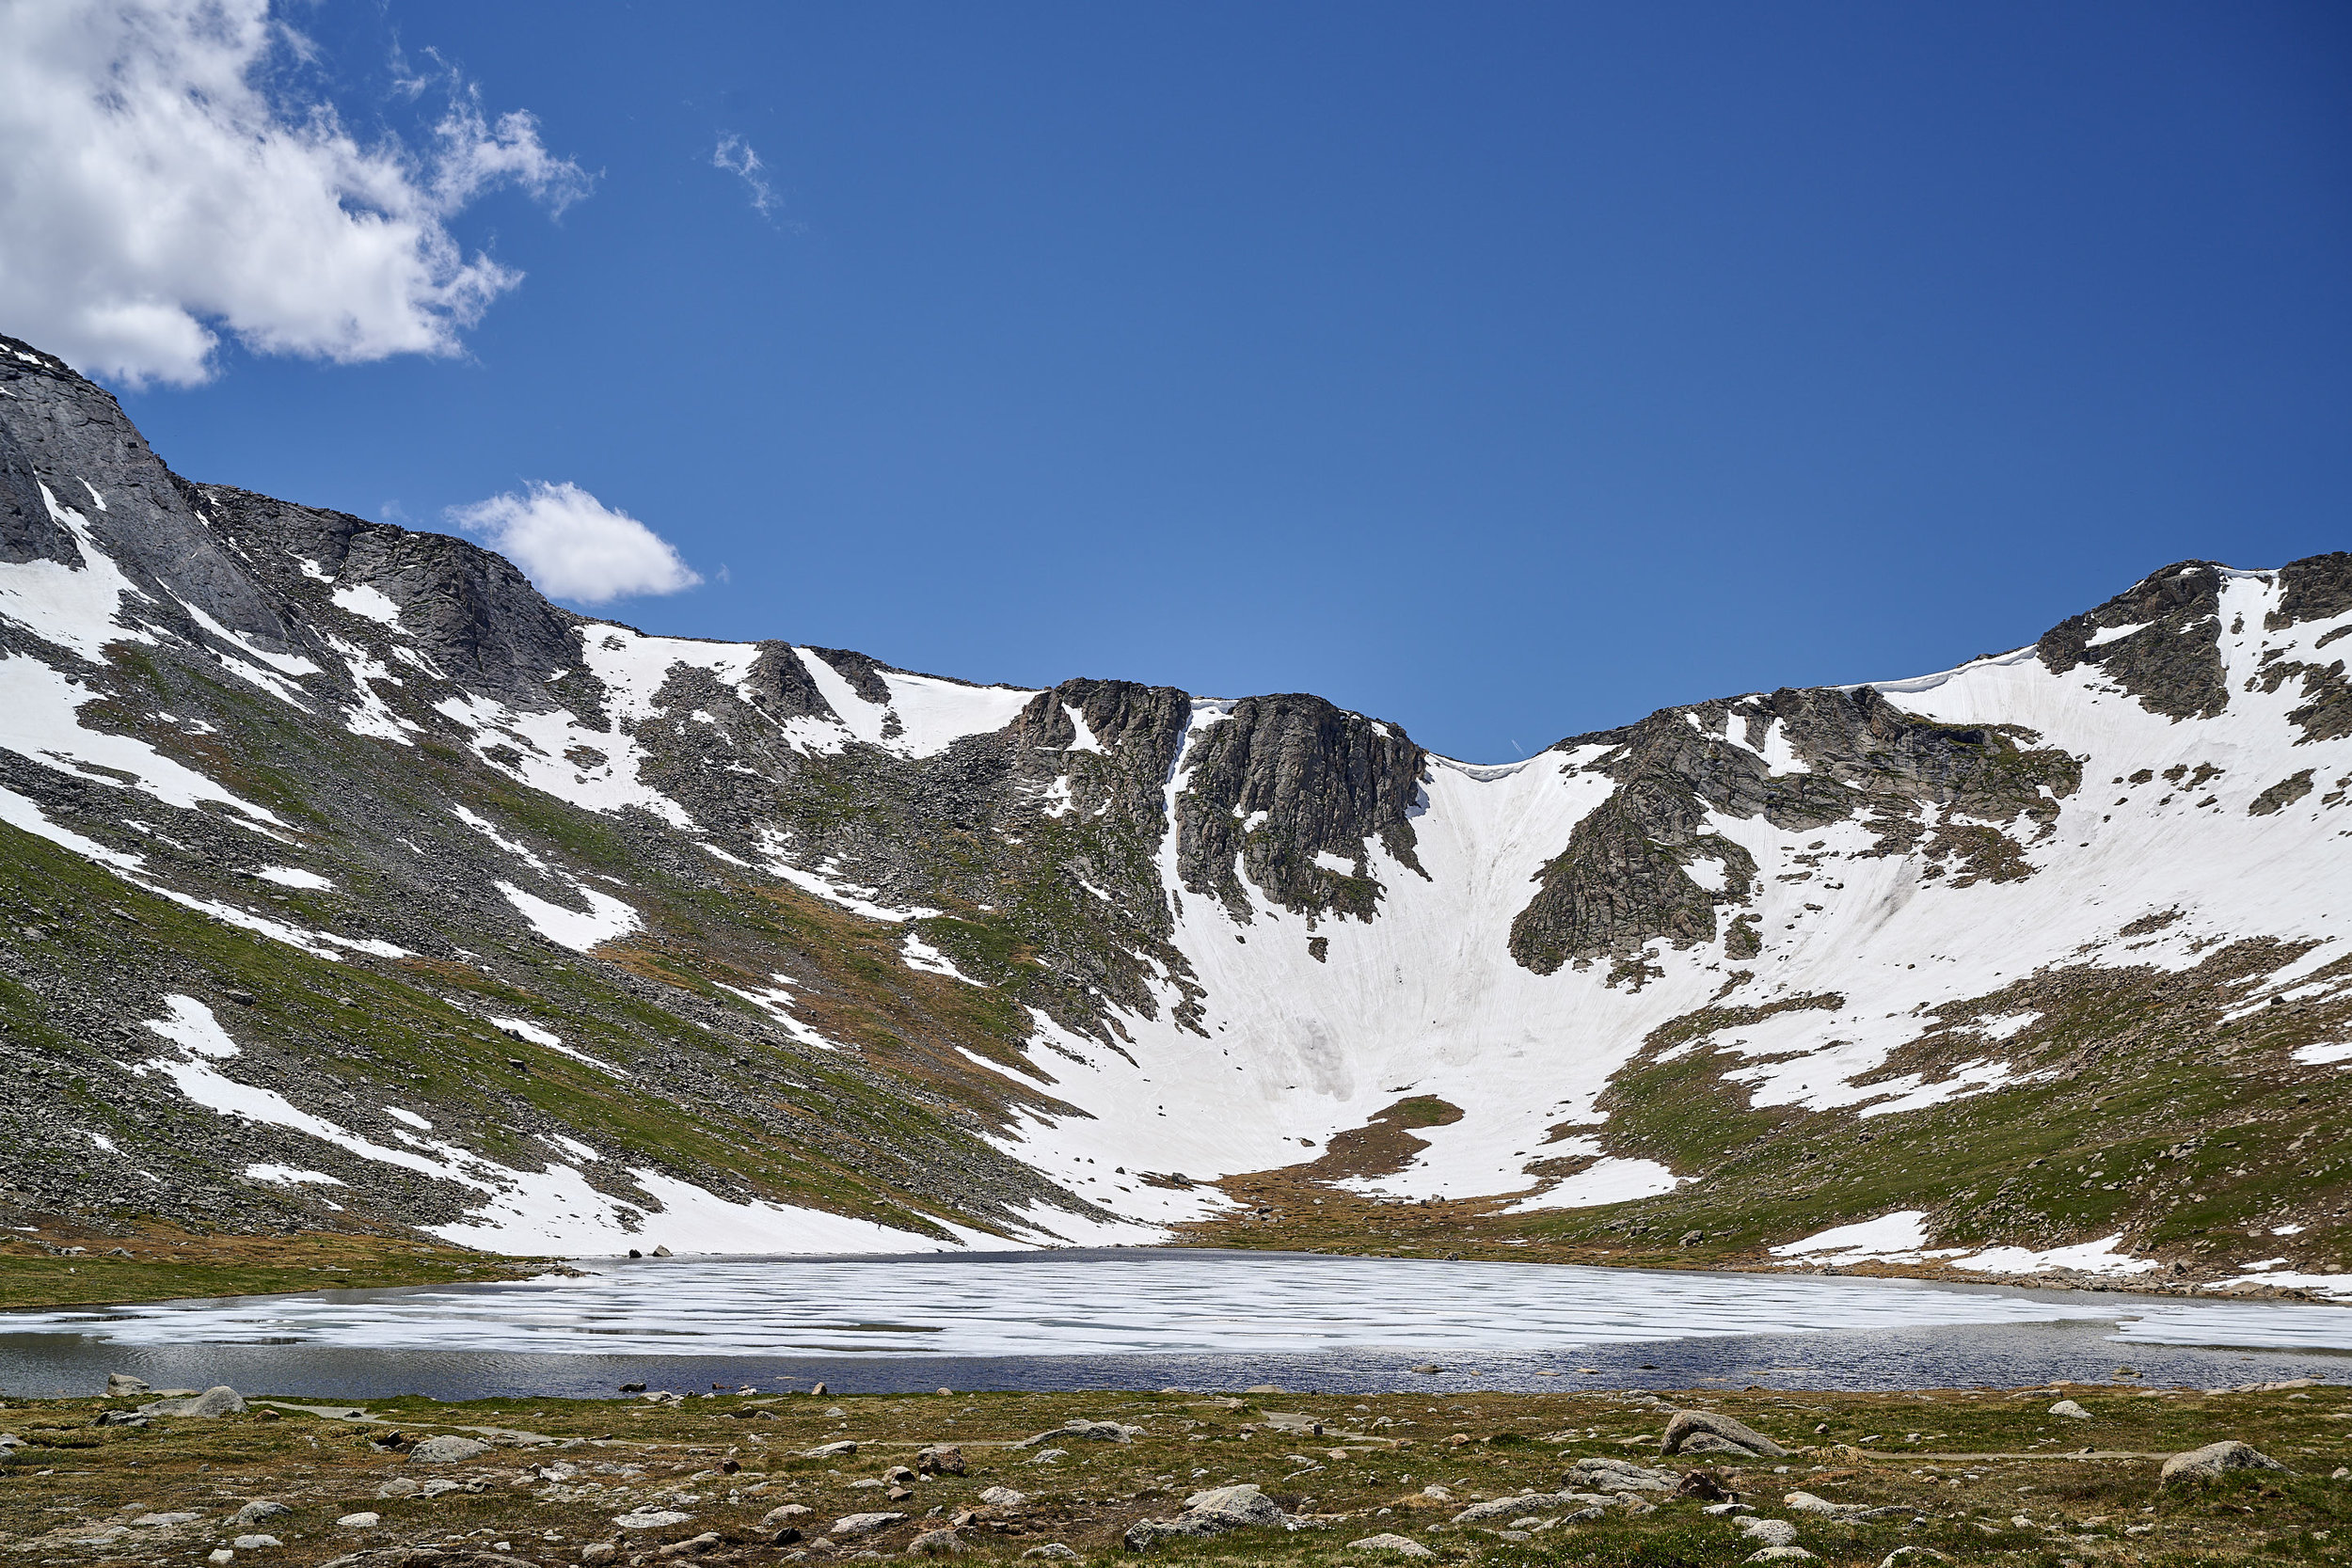 The stark Summit Lake - it wouldn't look out of place in Mordor